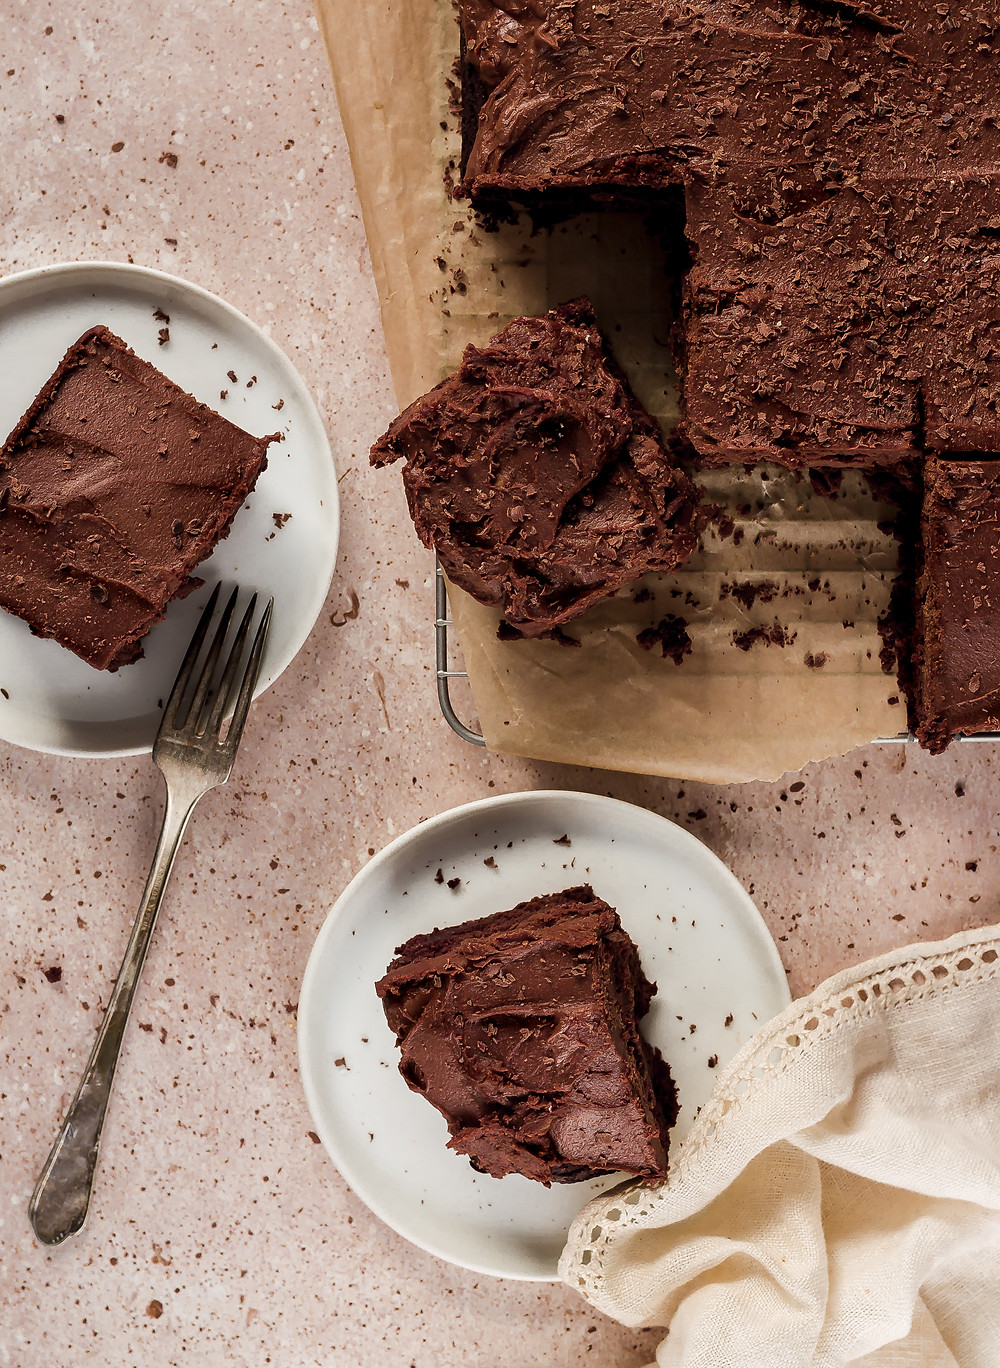 Vegan Gluten Free Chocolate Cake with Vegan Chocolate Buttercream Frosting | Pretty Delicious Life - I have been spending a lot of time reading through my Grammy's recipe books for inspiration lately. She is the main reason I have such a deep love of baking.